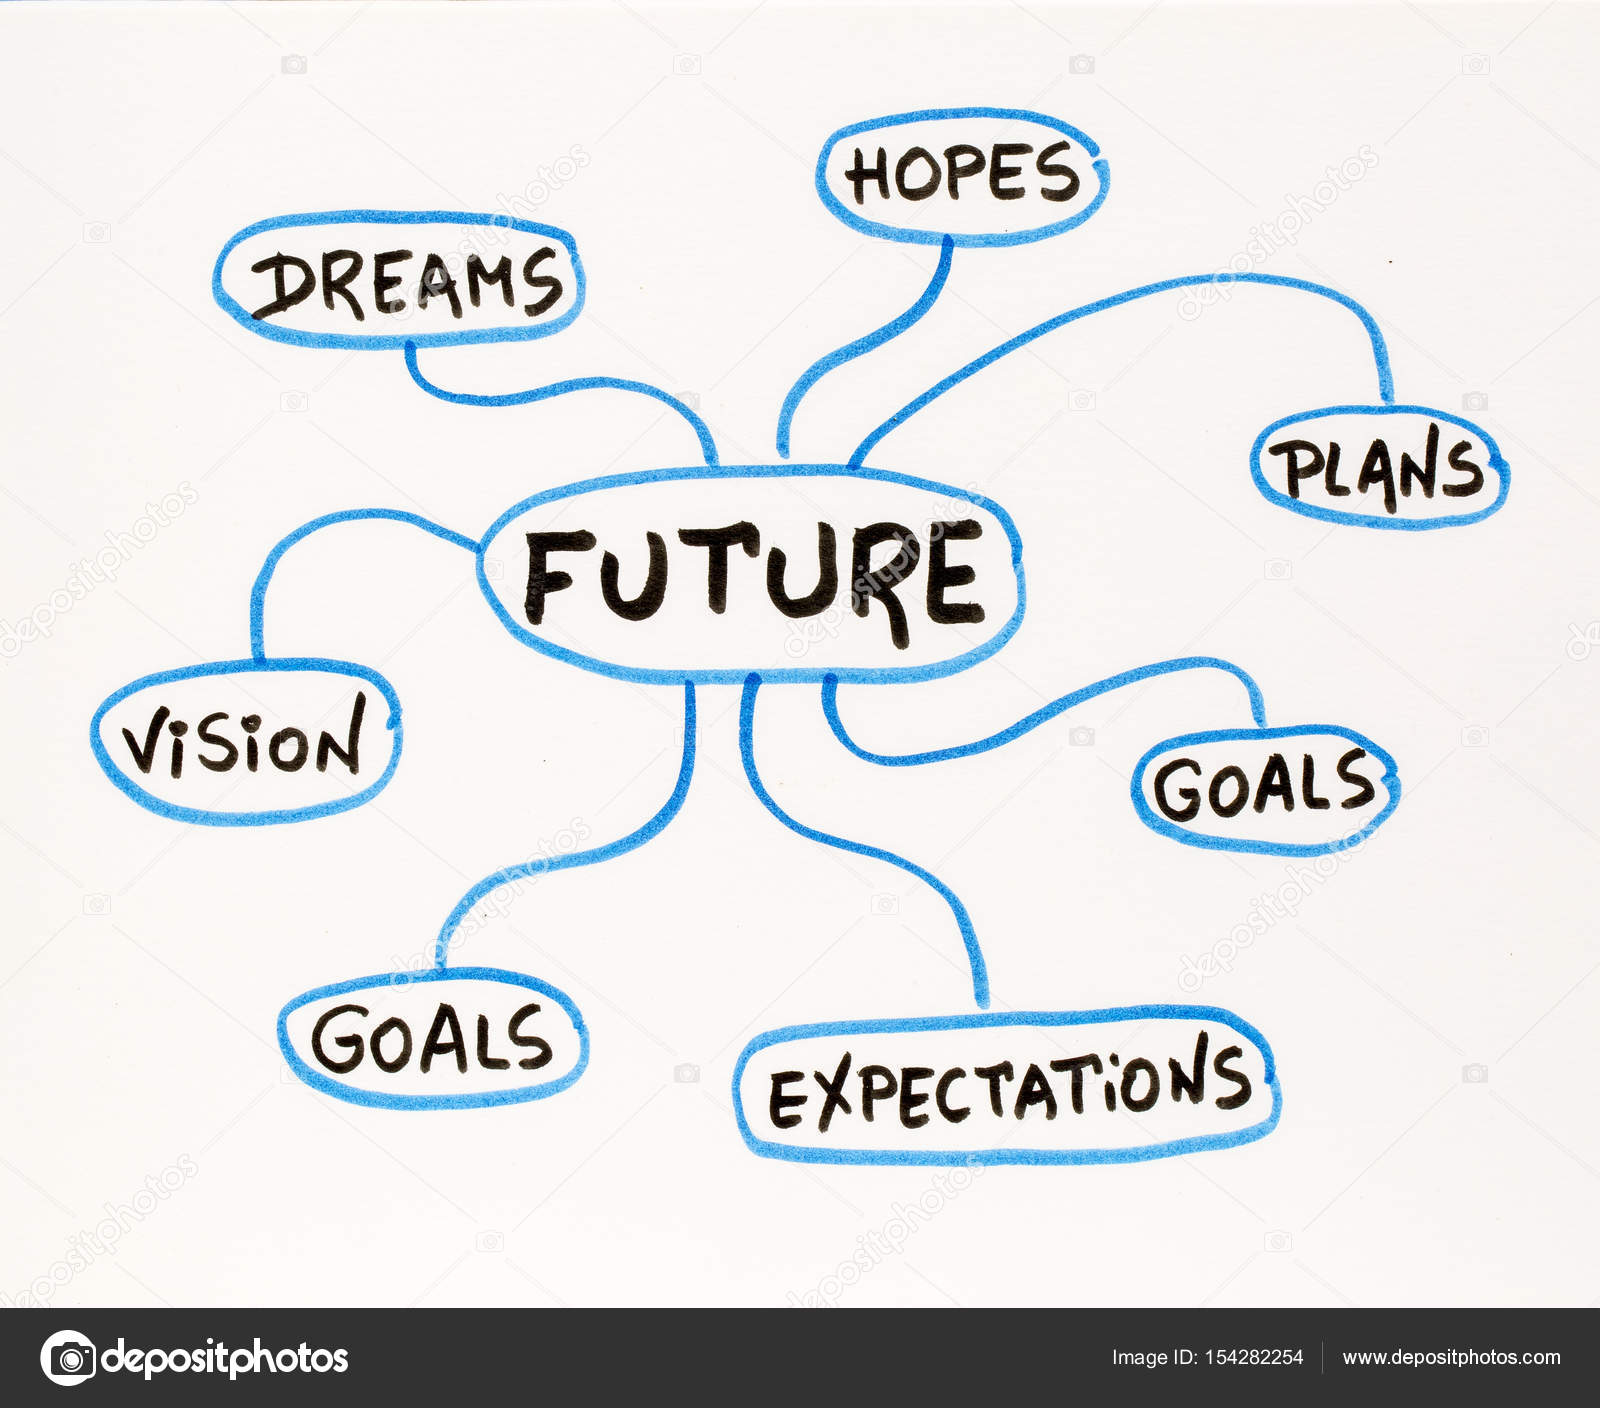 Dreams, goals, plans, vision and vision doodle — Stock Photo